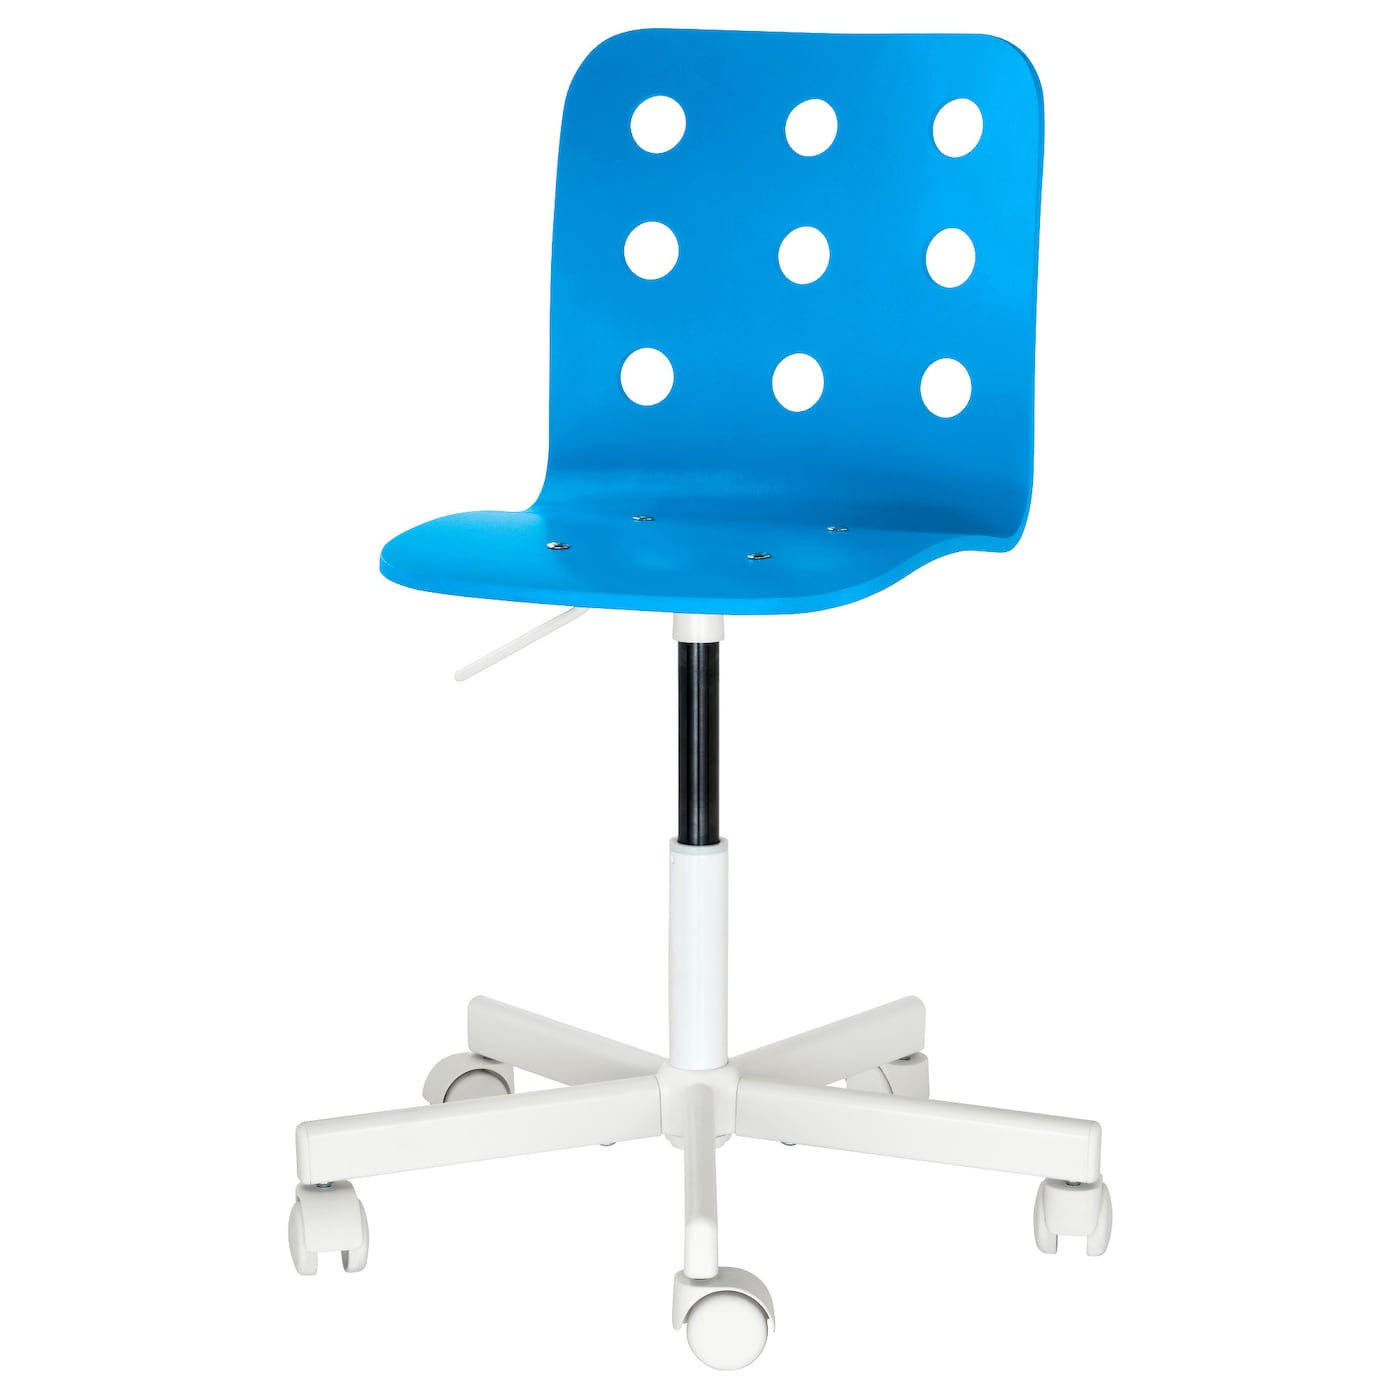 jules children 39 s desk chair blue white ikea. Black Bedroom Furniture Sets. Home Design Ideas